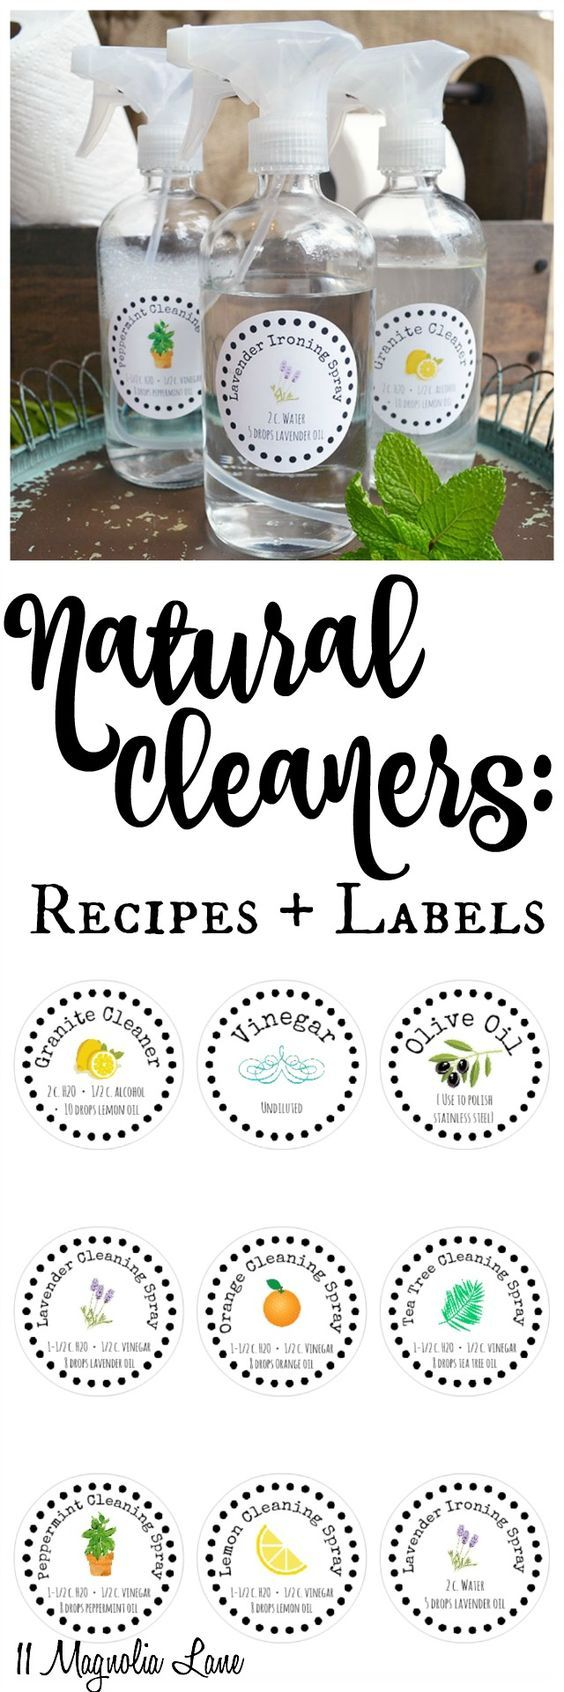 Spring cleaning tips, including natural DIY cleaning solution recipes using essential oils and free printable labels for your cleaners (peppermint, lemon, tea tea, lavender, orange, vinegar, olive oil)